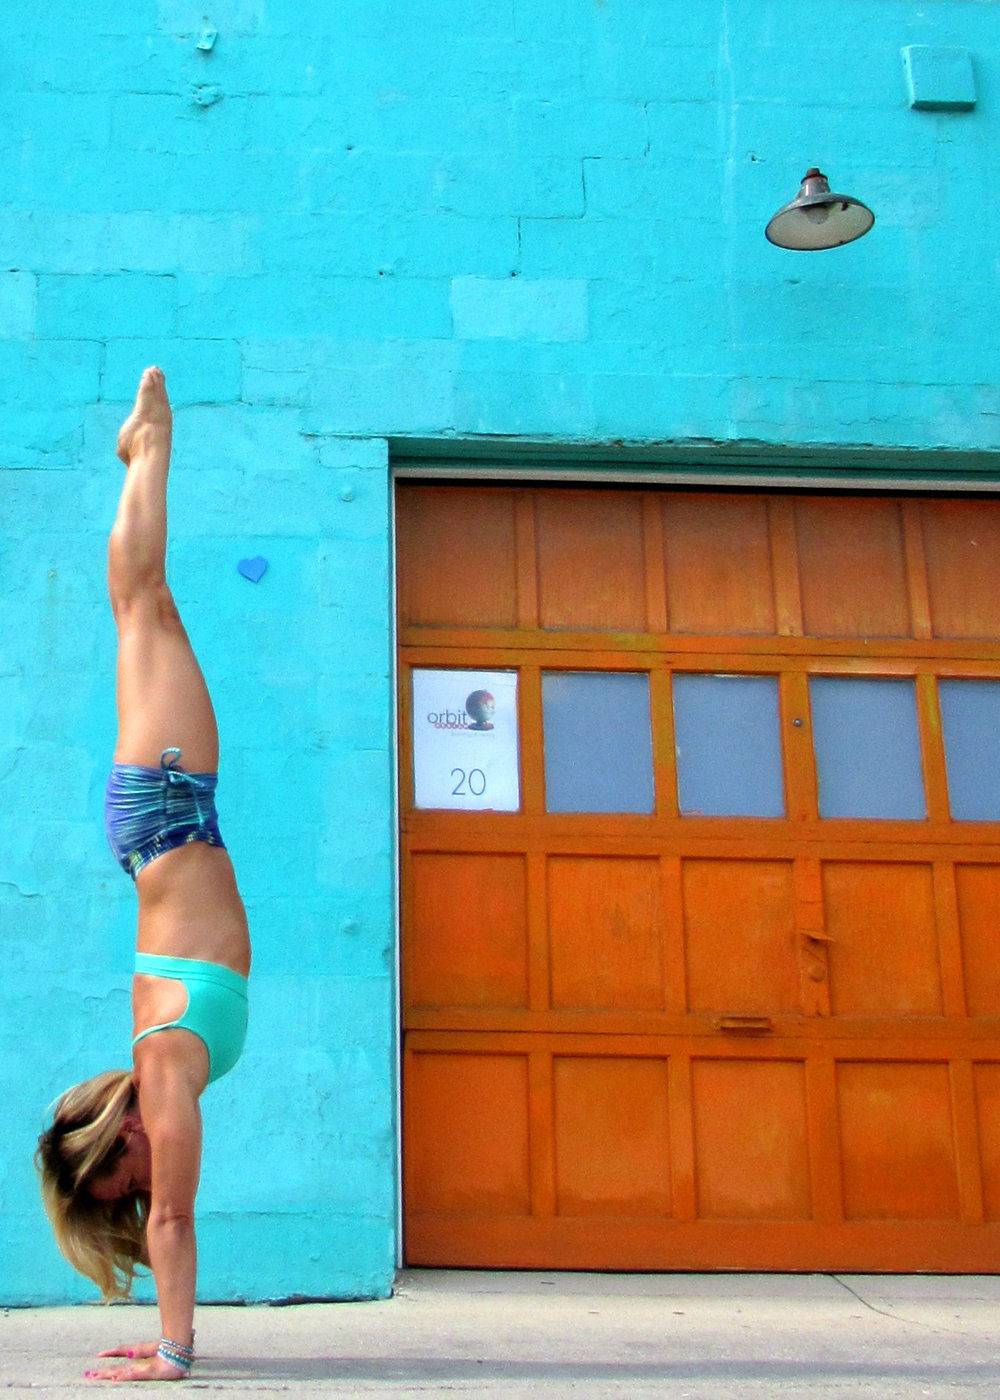 Kino Turquoise Handstand Peace to the People Portrait Photography.jpg